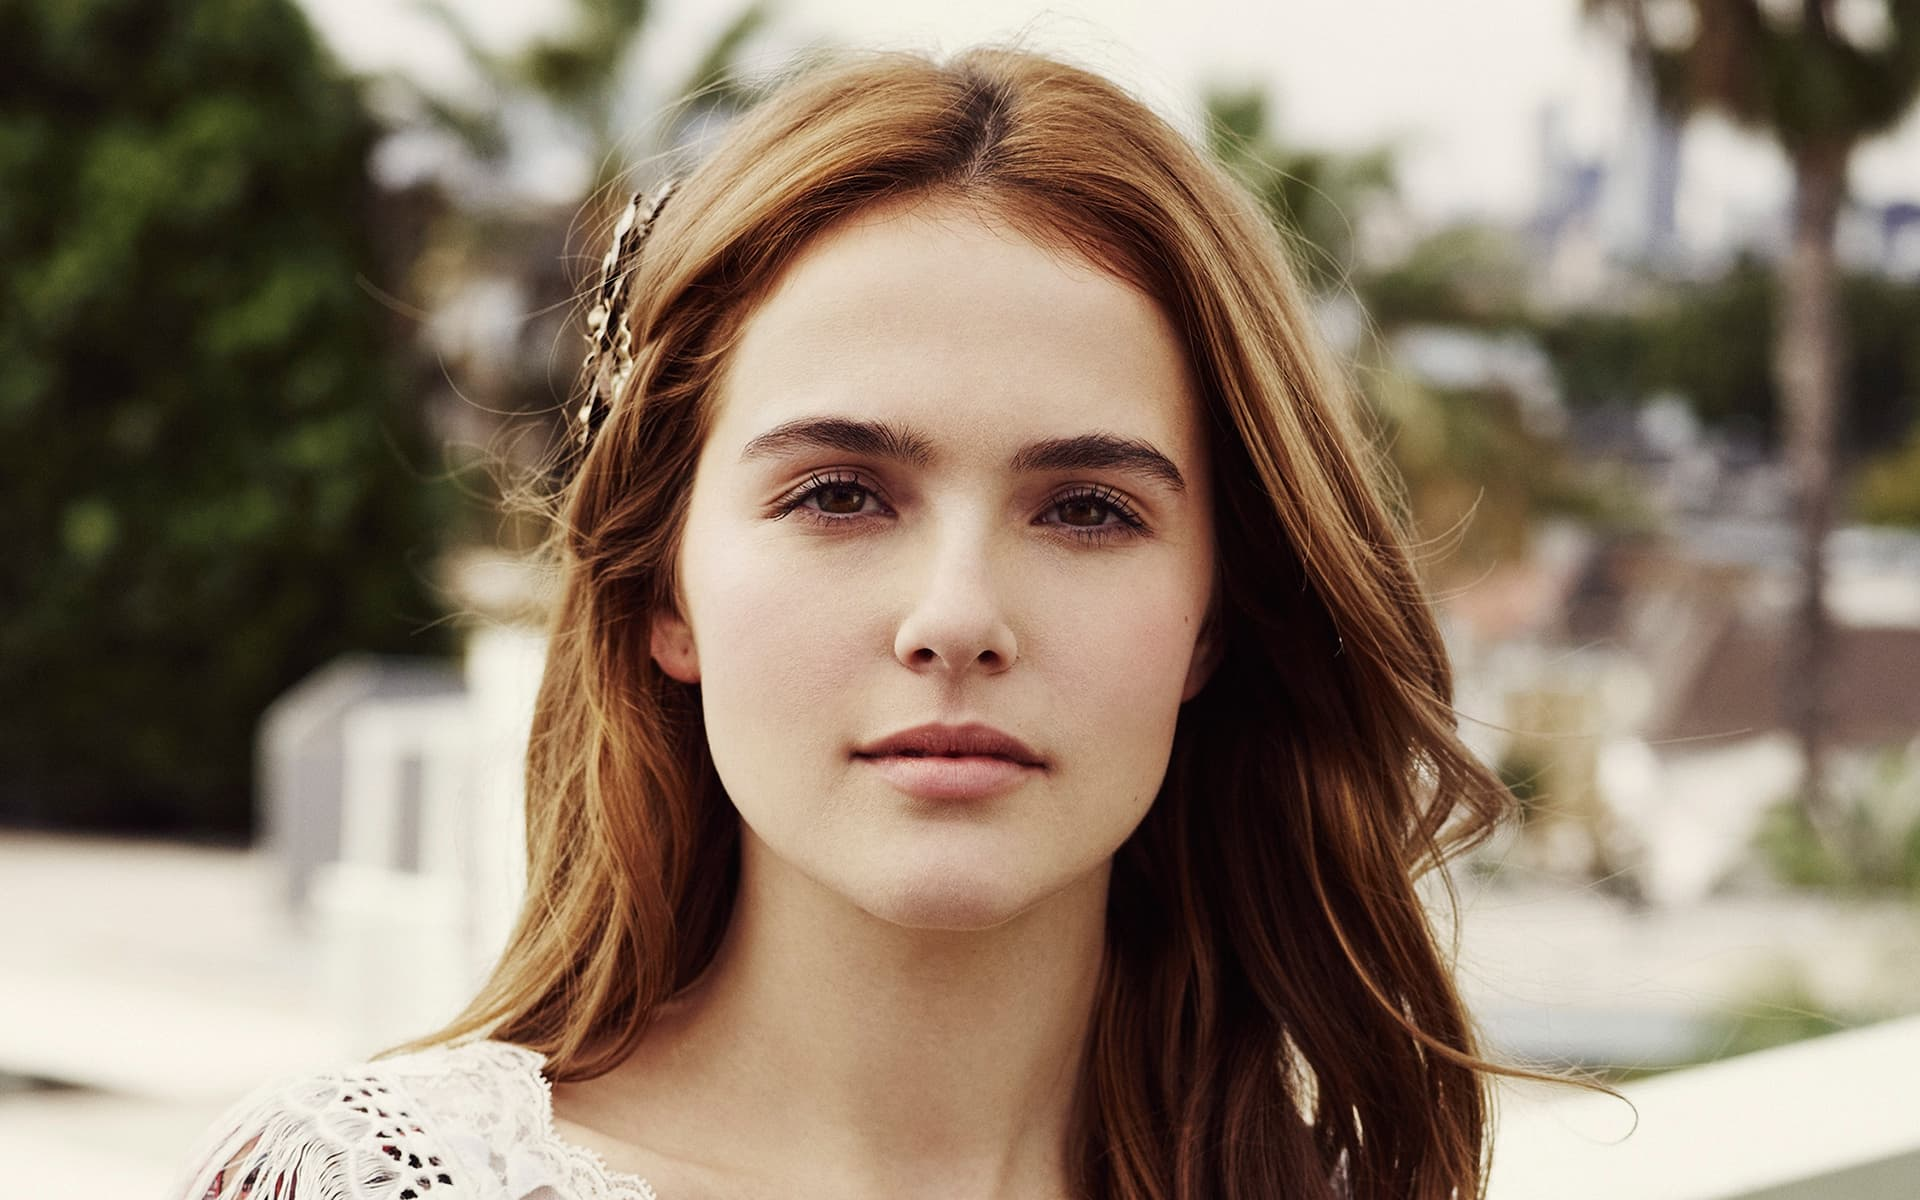 Download The Car Wallpaper 14 Zoey Deutch Wallpapers High Quality Resolution Download